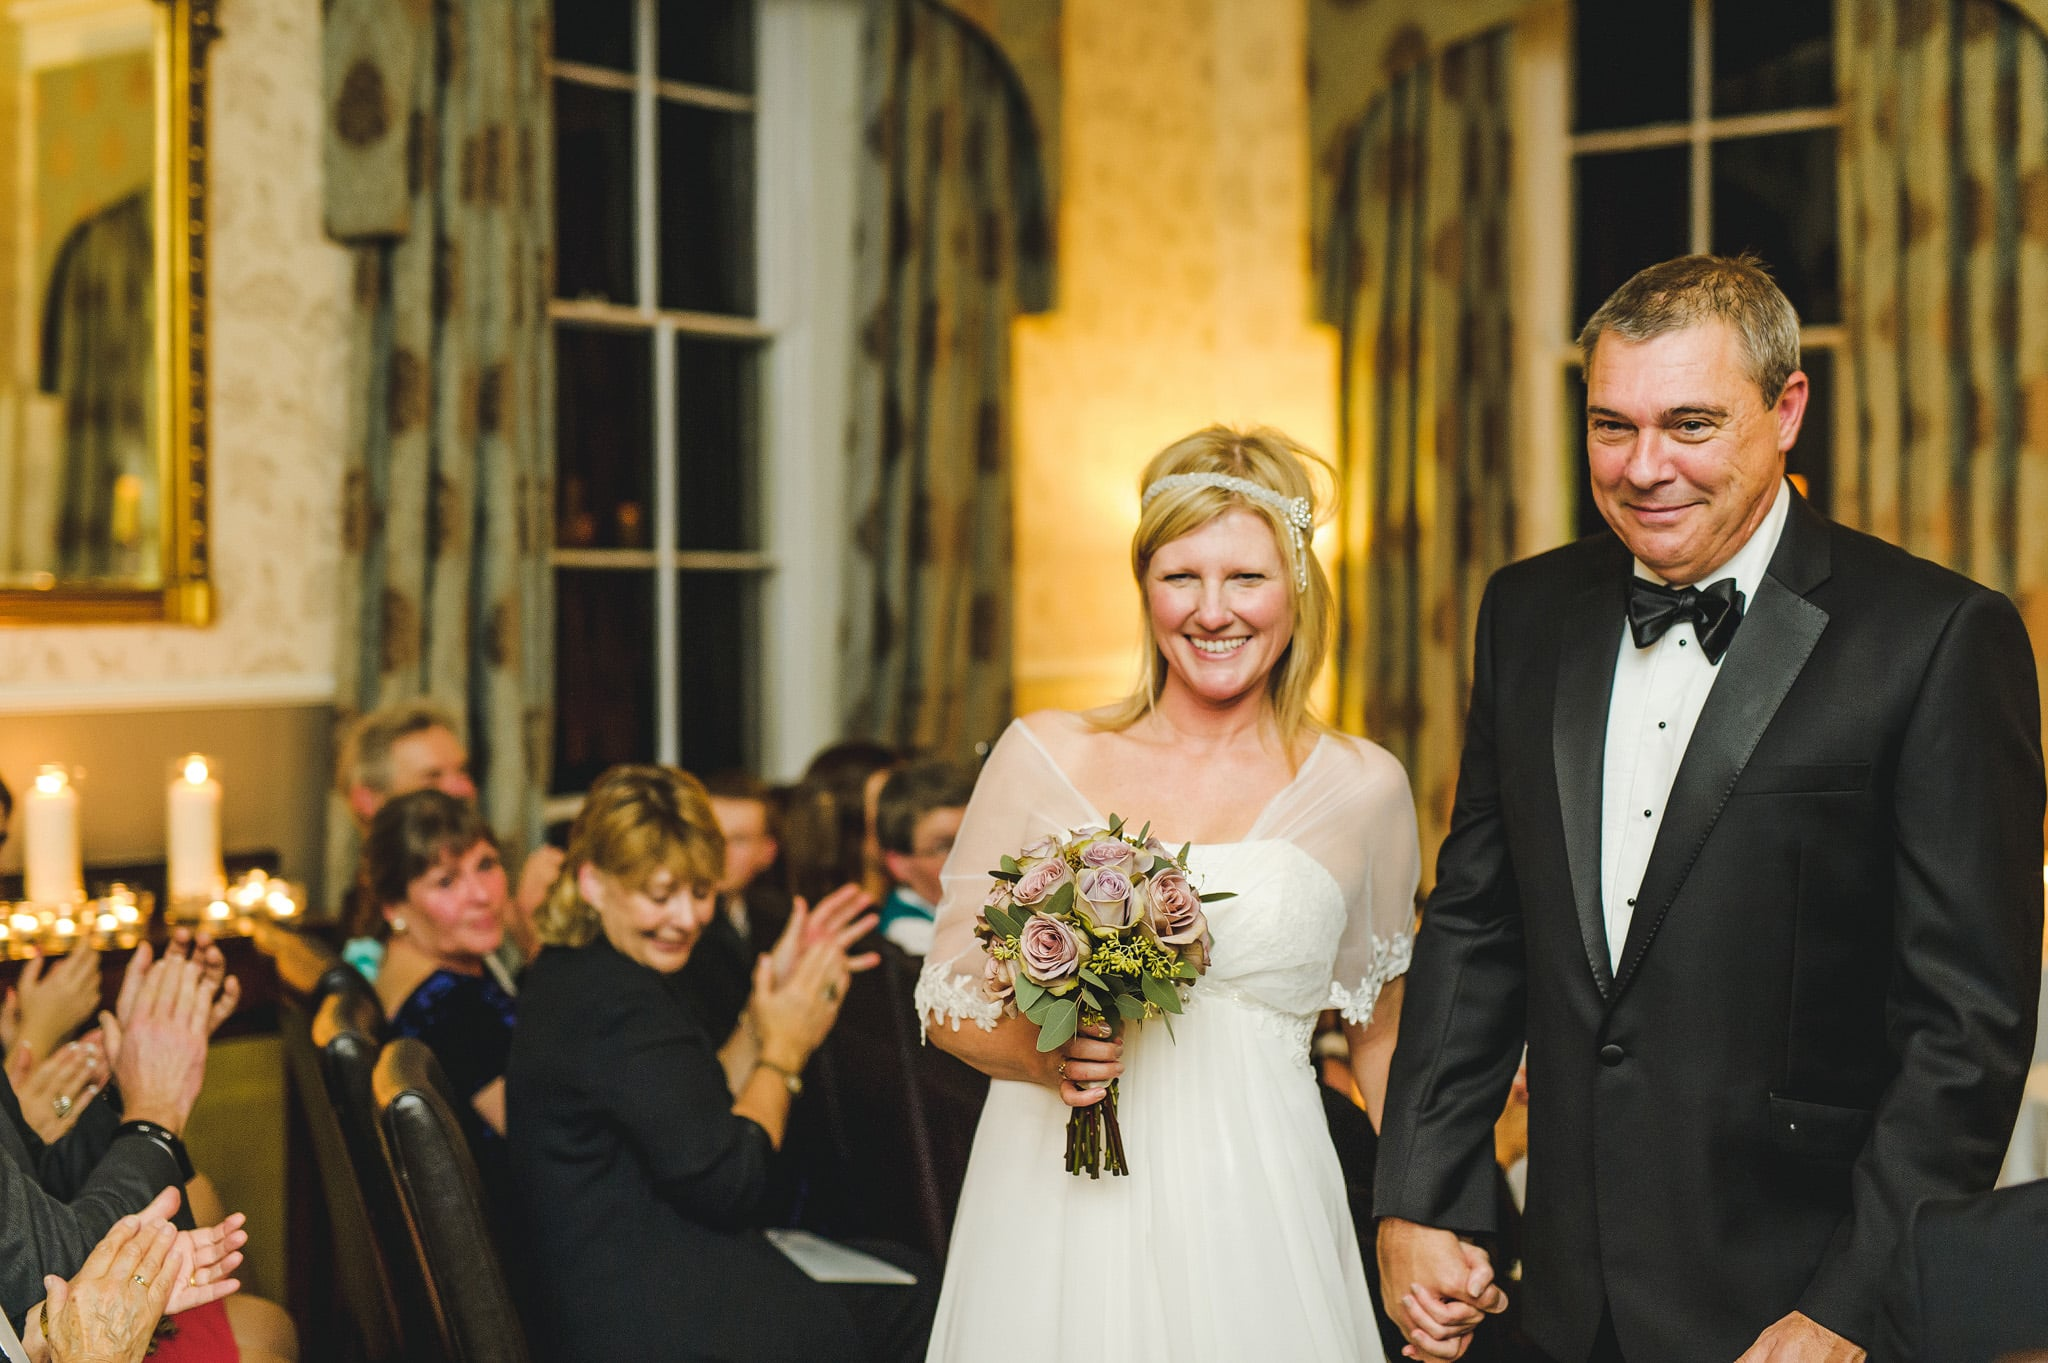 Midlands wedding photography - 2015 Review 64